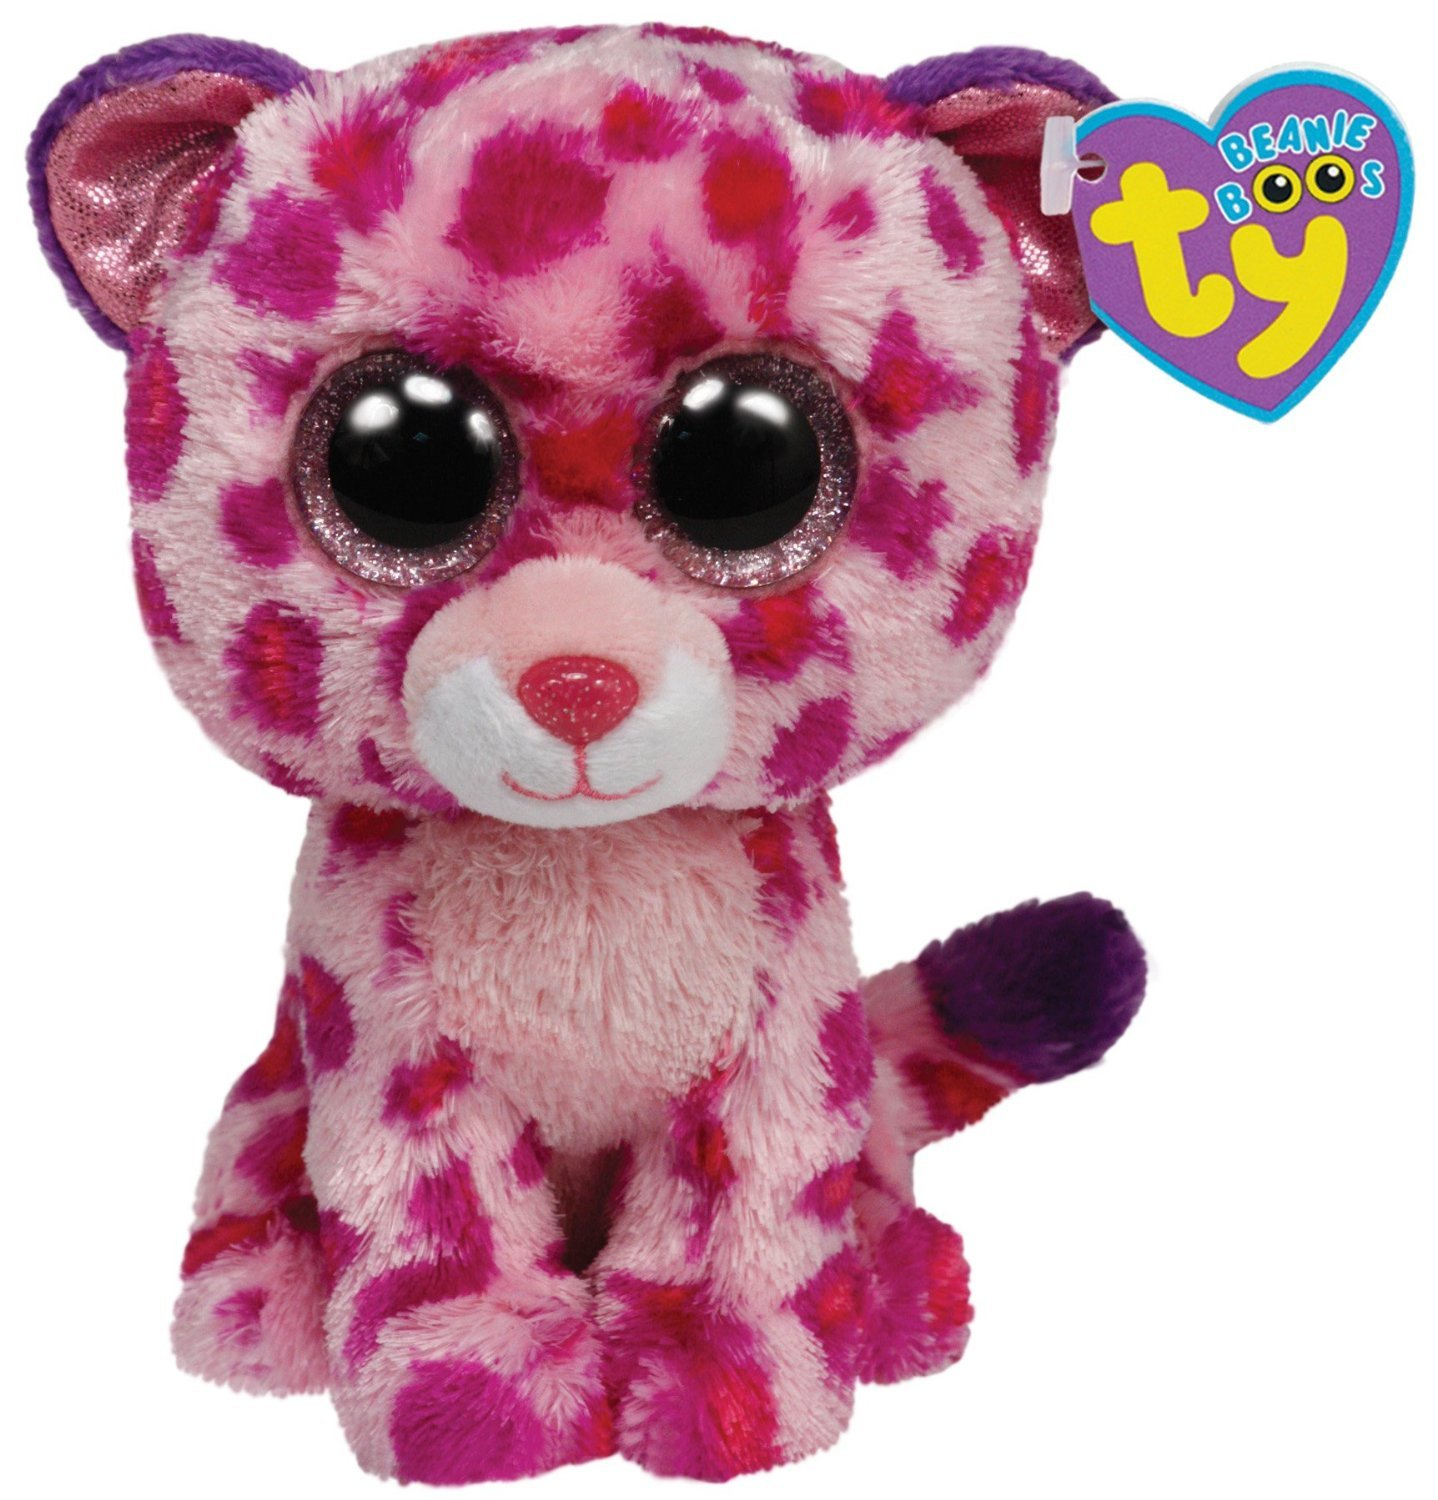 TY Beanie Boo's Medium - Glamour the Leopard image